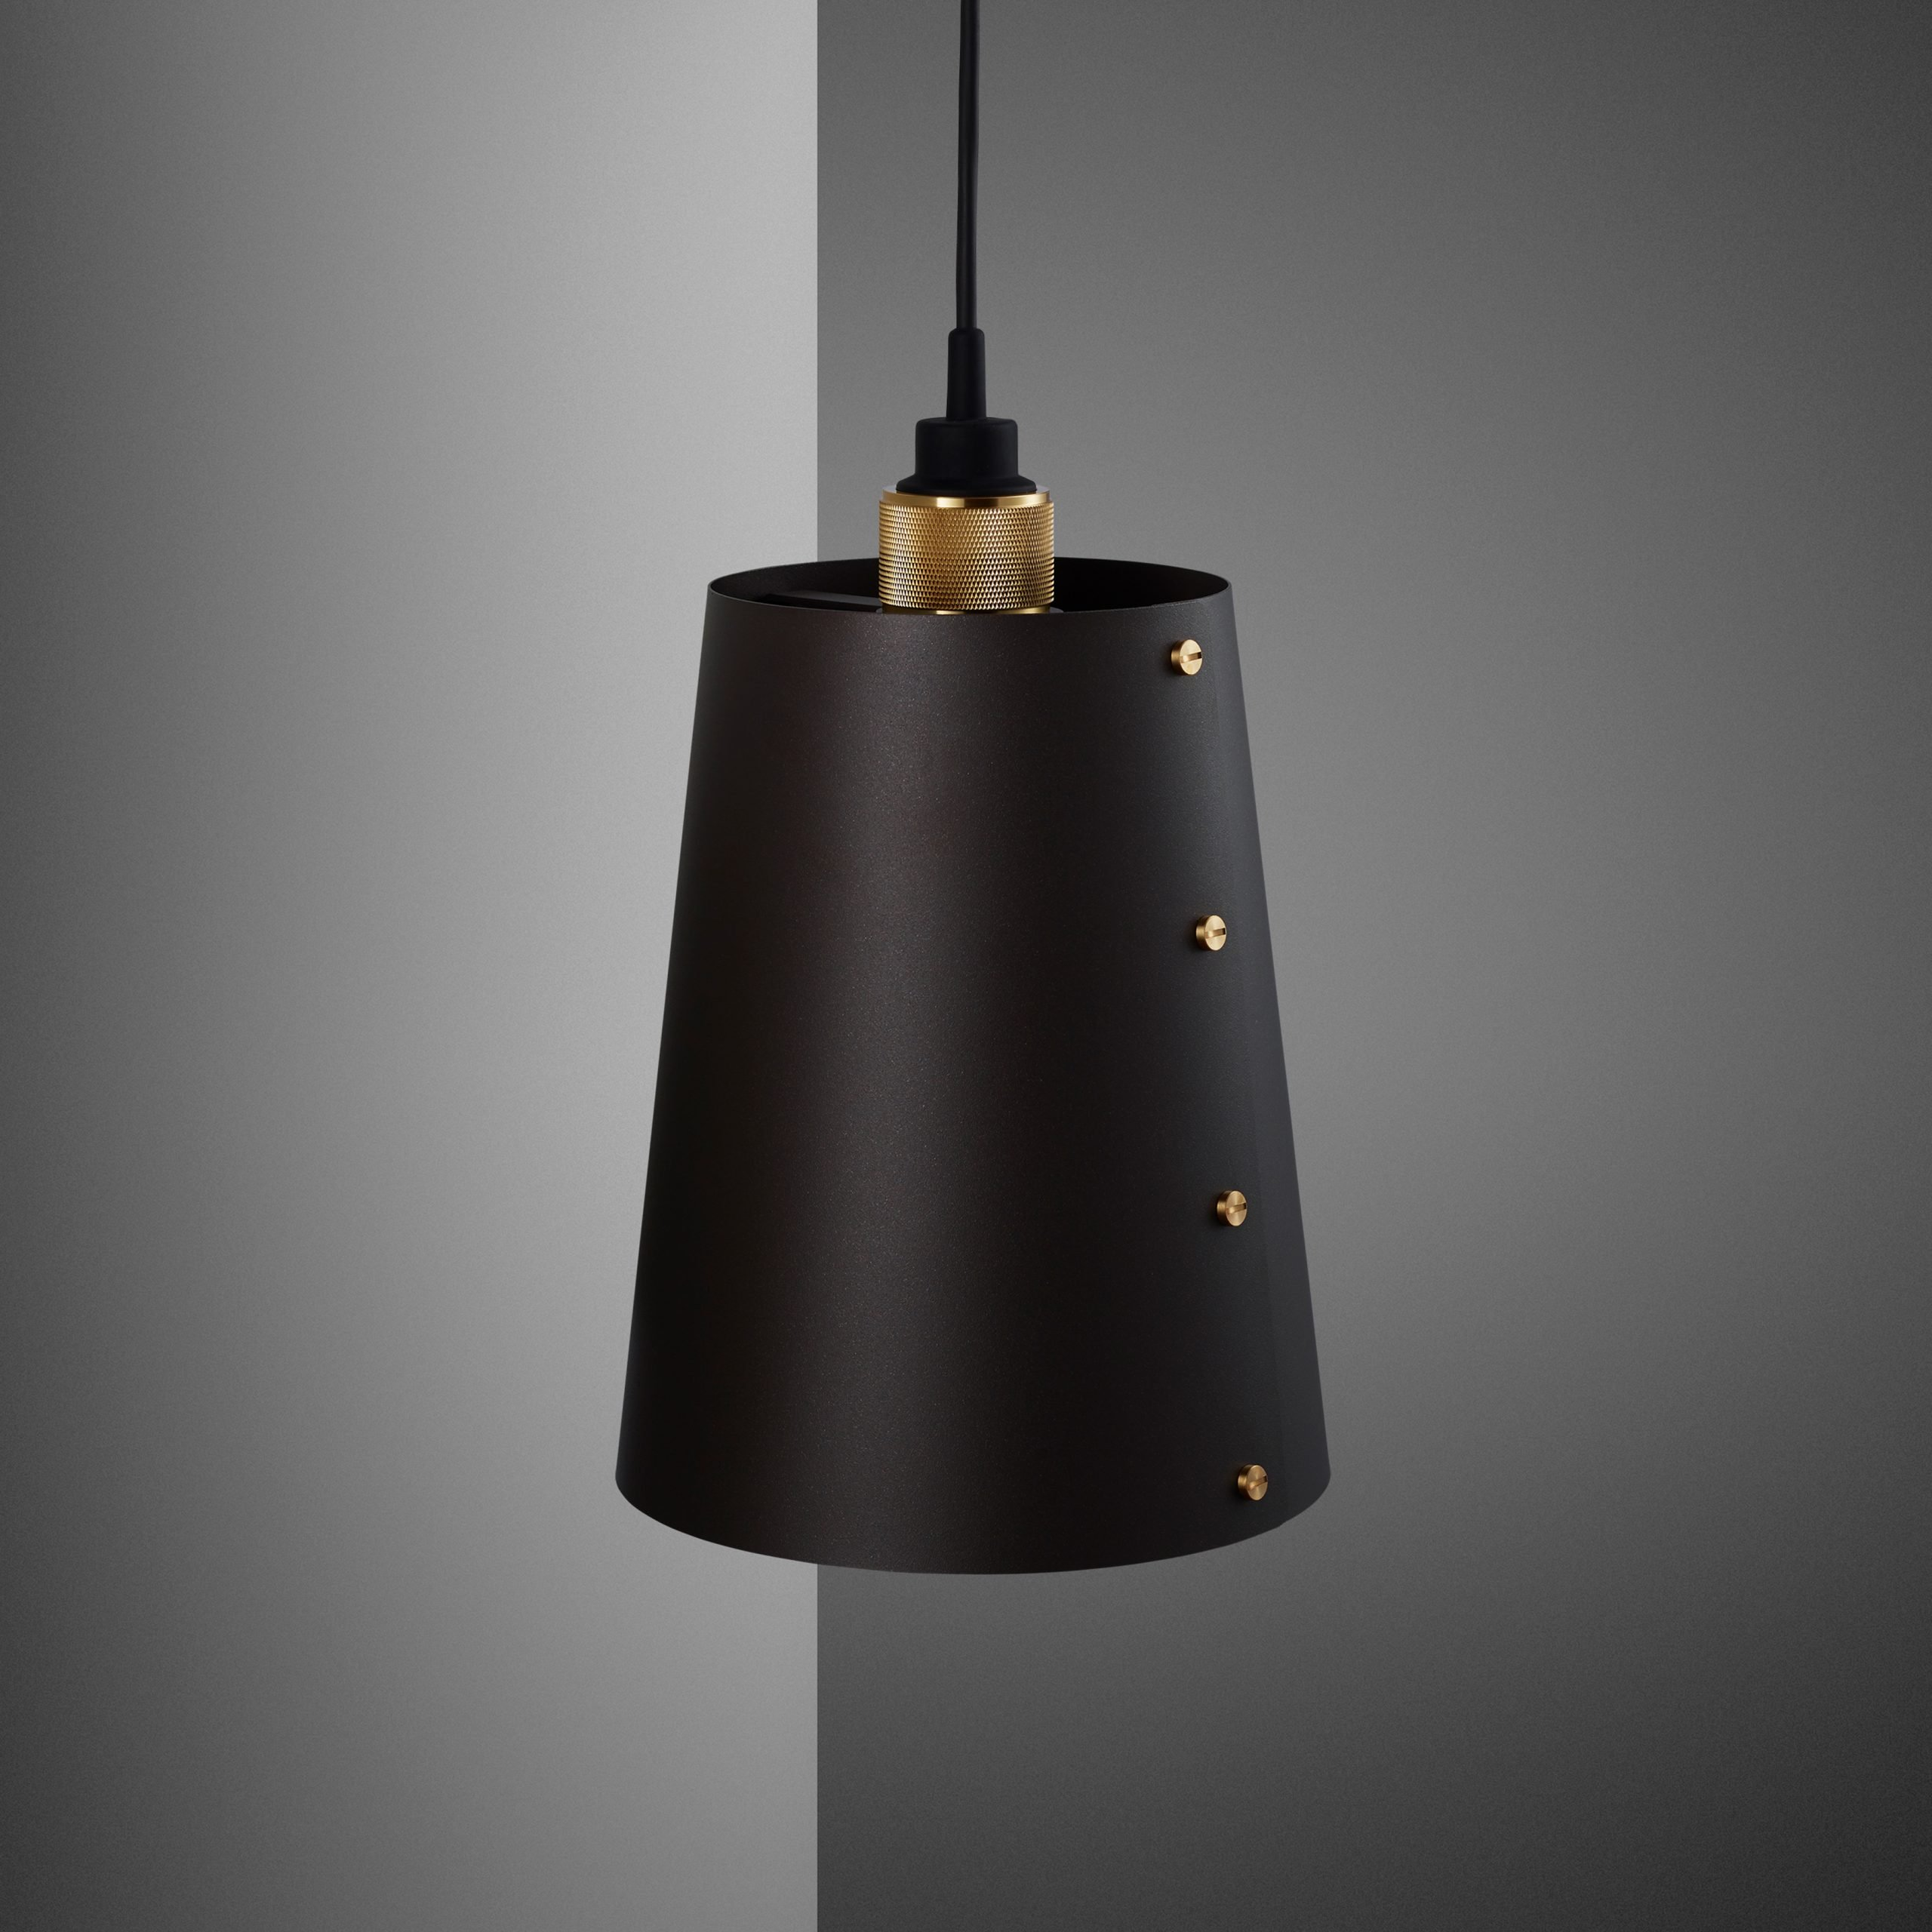 2. Buster+Punch_Hooked_Wall_Graphite_Brass_Detail_2